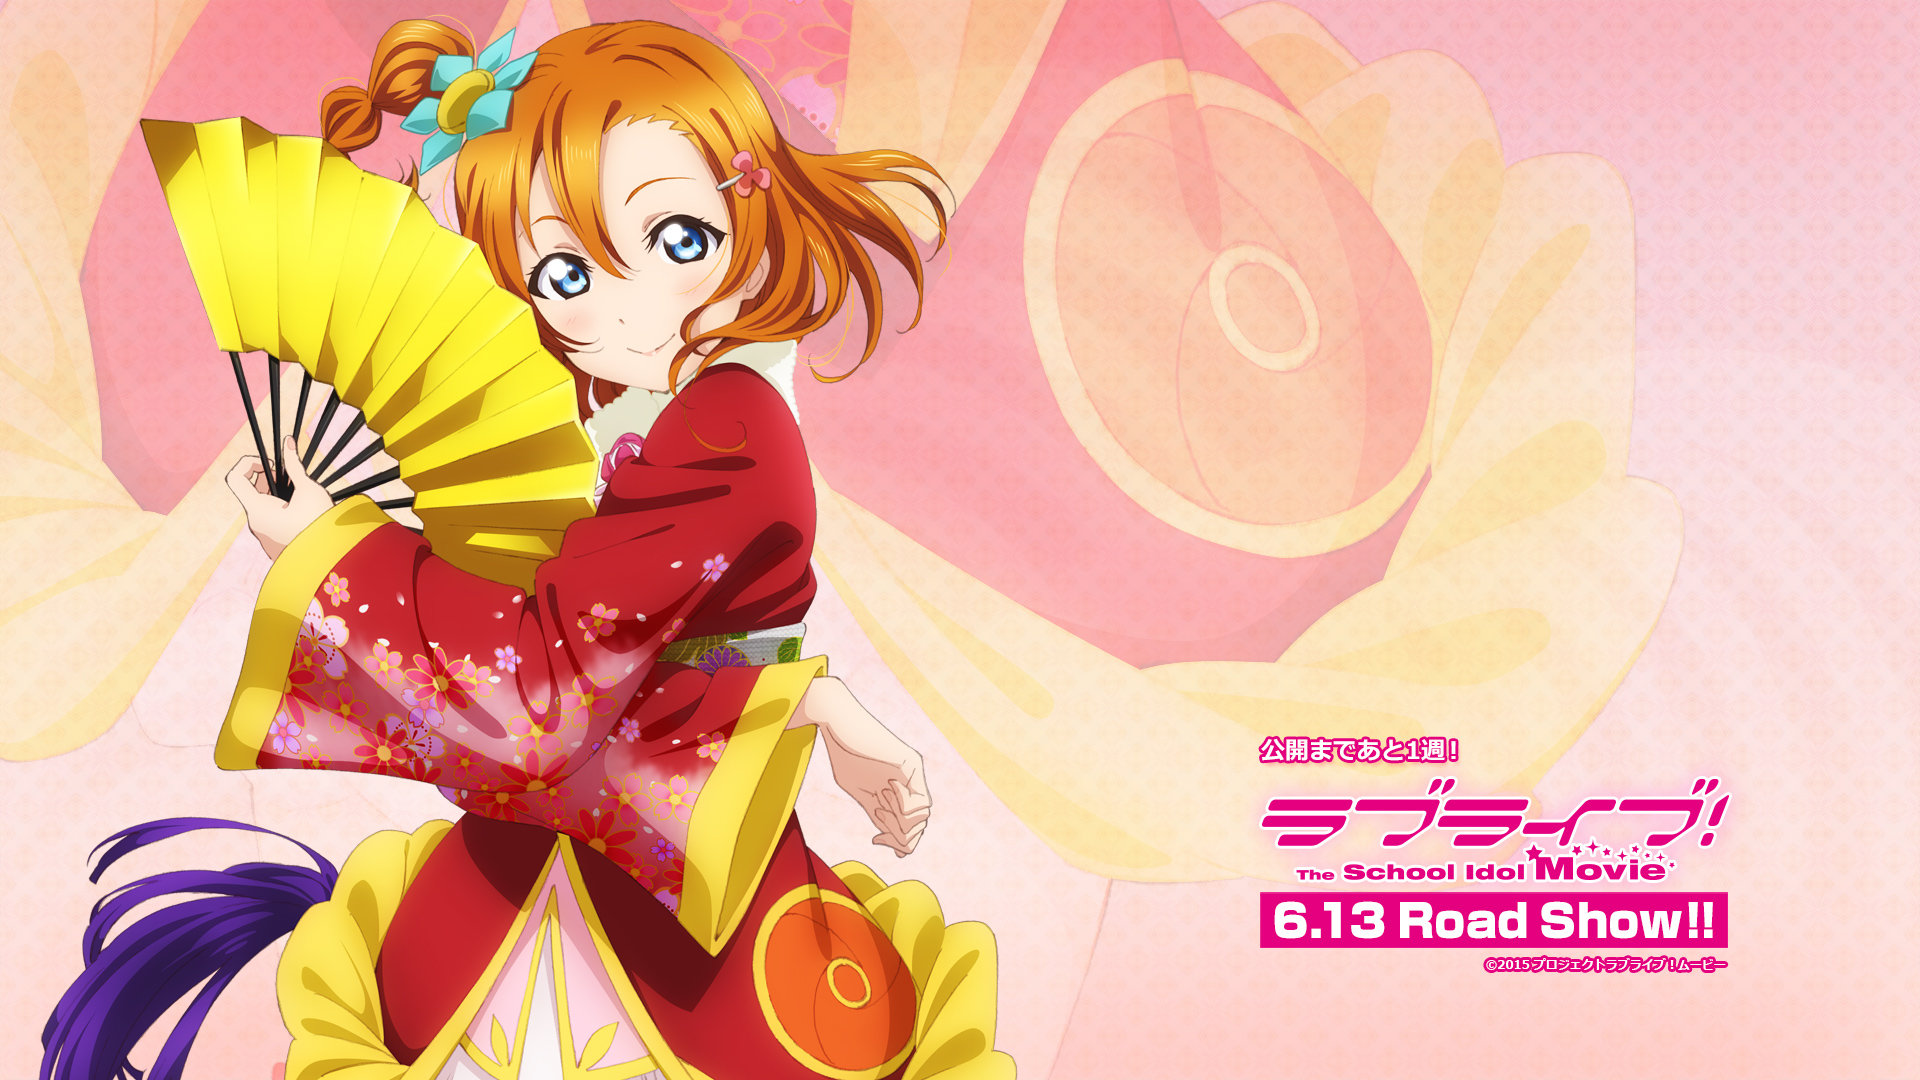 Download Hd 1920x1080 Love Live Pc Wallpaper Id151962 For Free